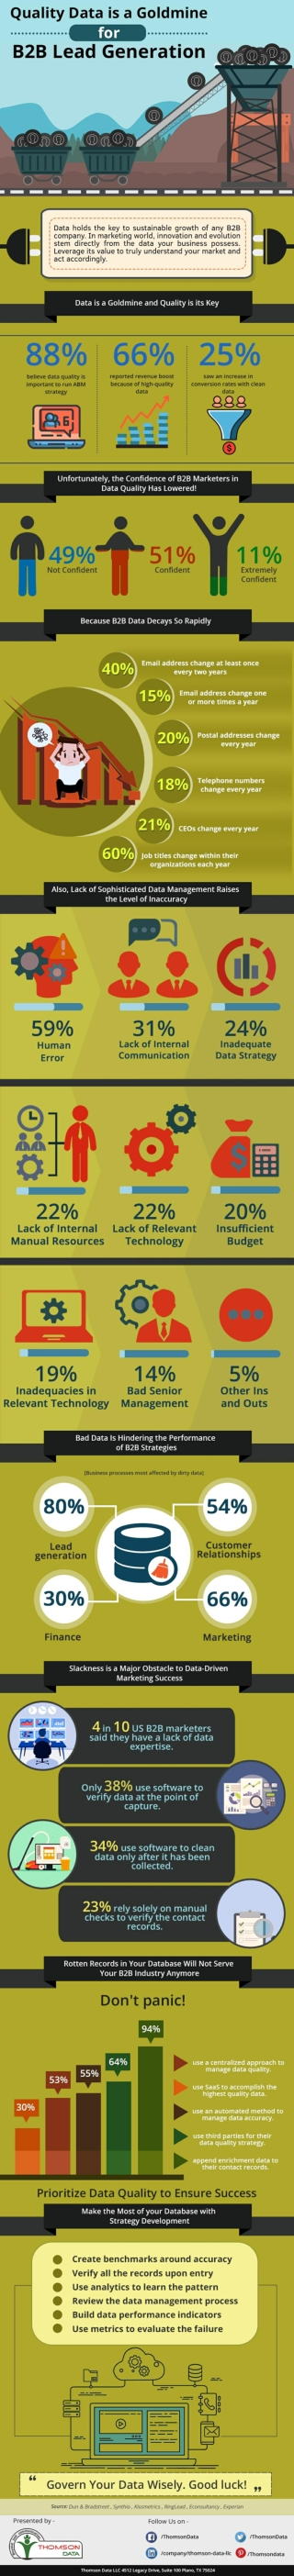 Quality Data is a Goldmine for B2B Industry